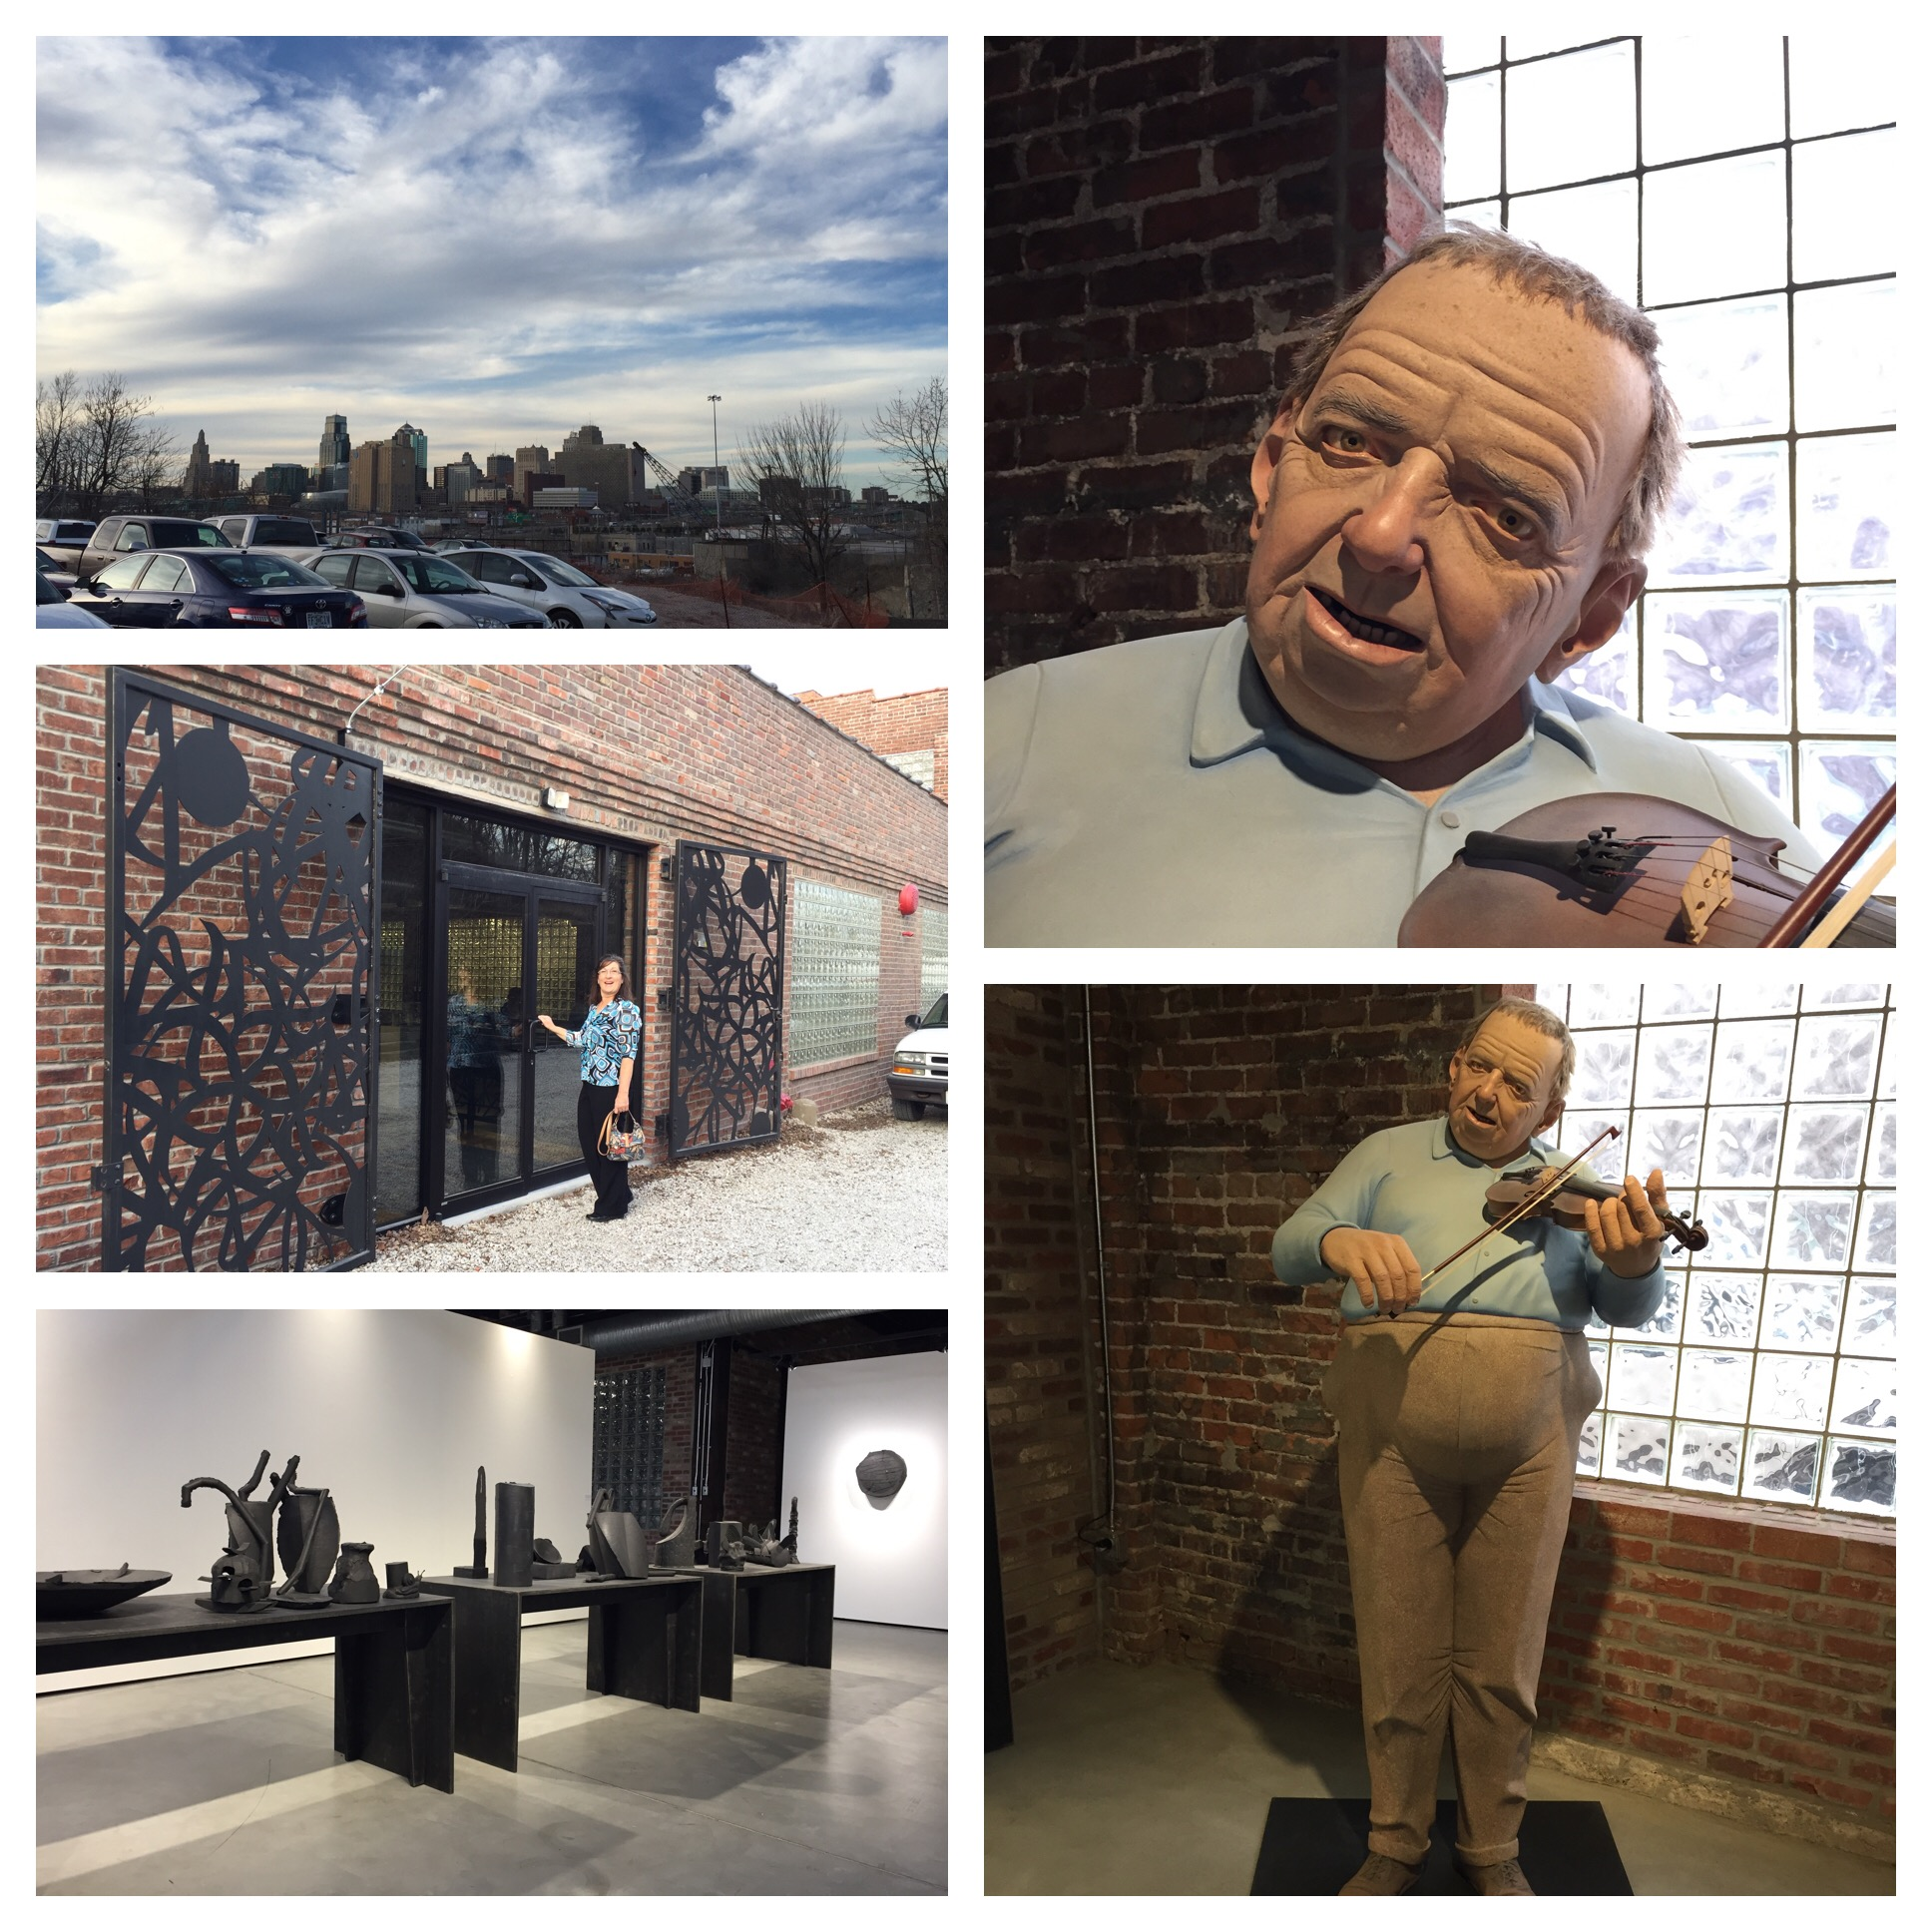 Top left - view from the studio of downtown from the parking lot. Middle - Deidre entering the studio through the awesome iron gates. Bottom - some of the items on display and on the right is this awesome statue that greets you inside - the face is so lifelike!